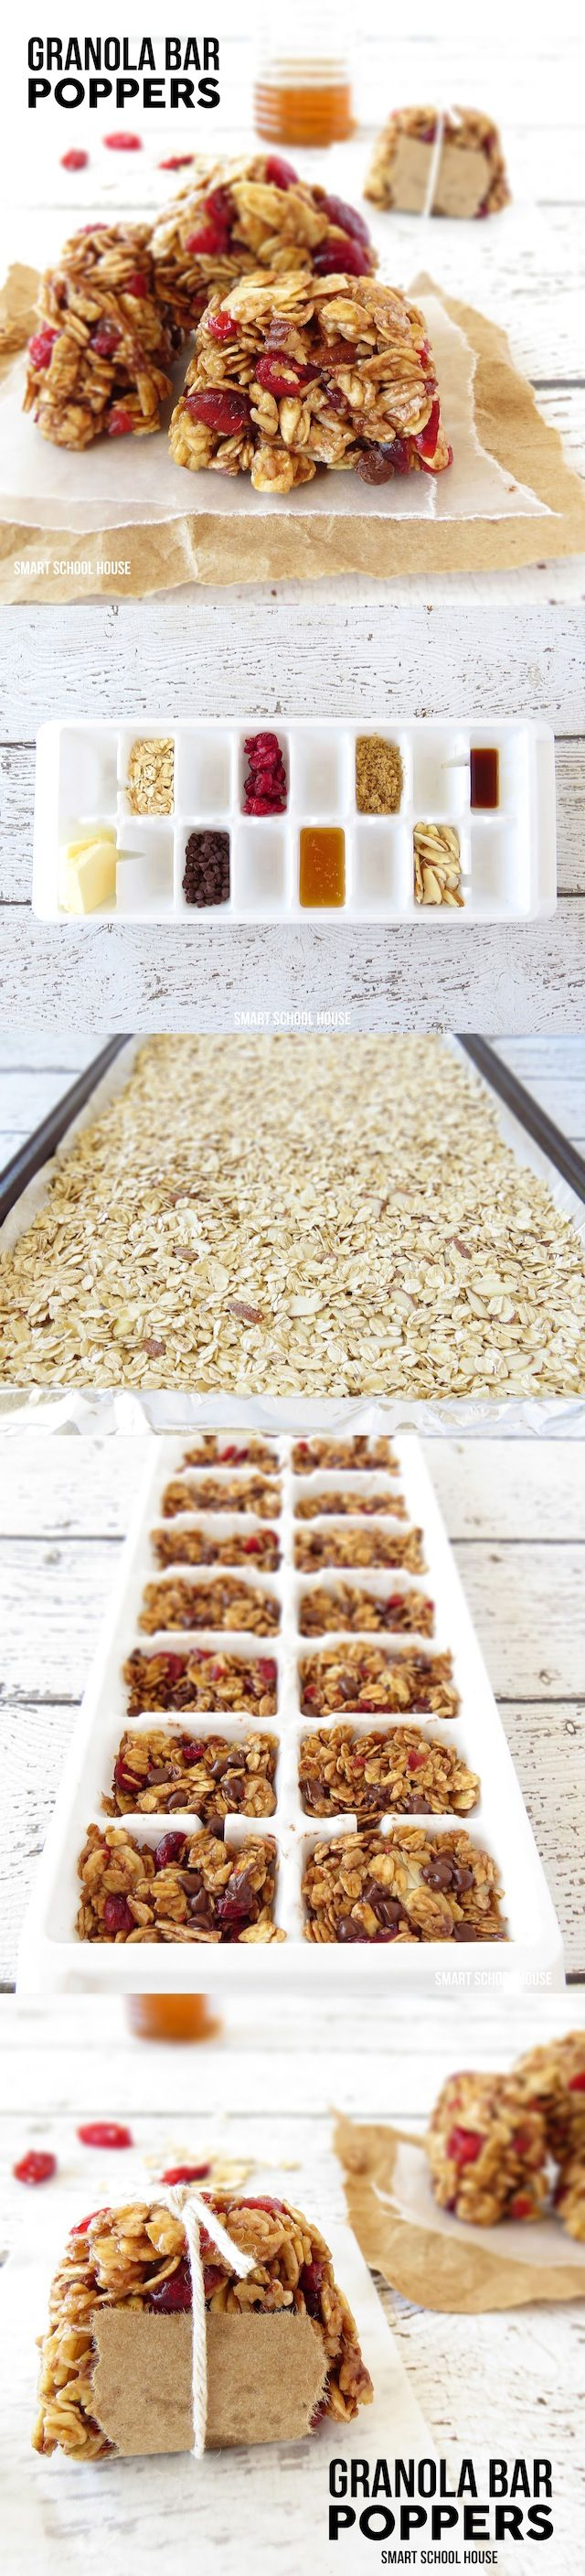 How to make Granola Bar Poppers in an ice cube tray - sub out any nuts for pumpkin and sunflower seeds